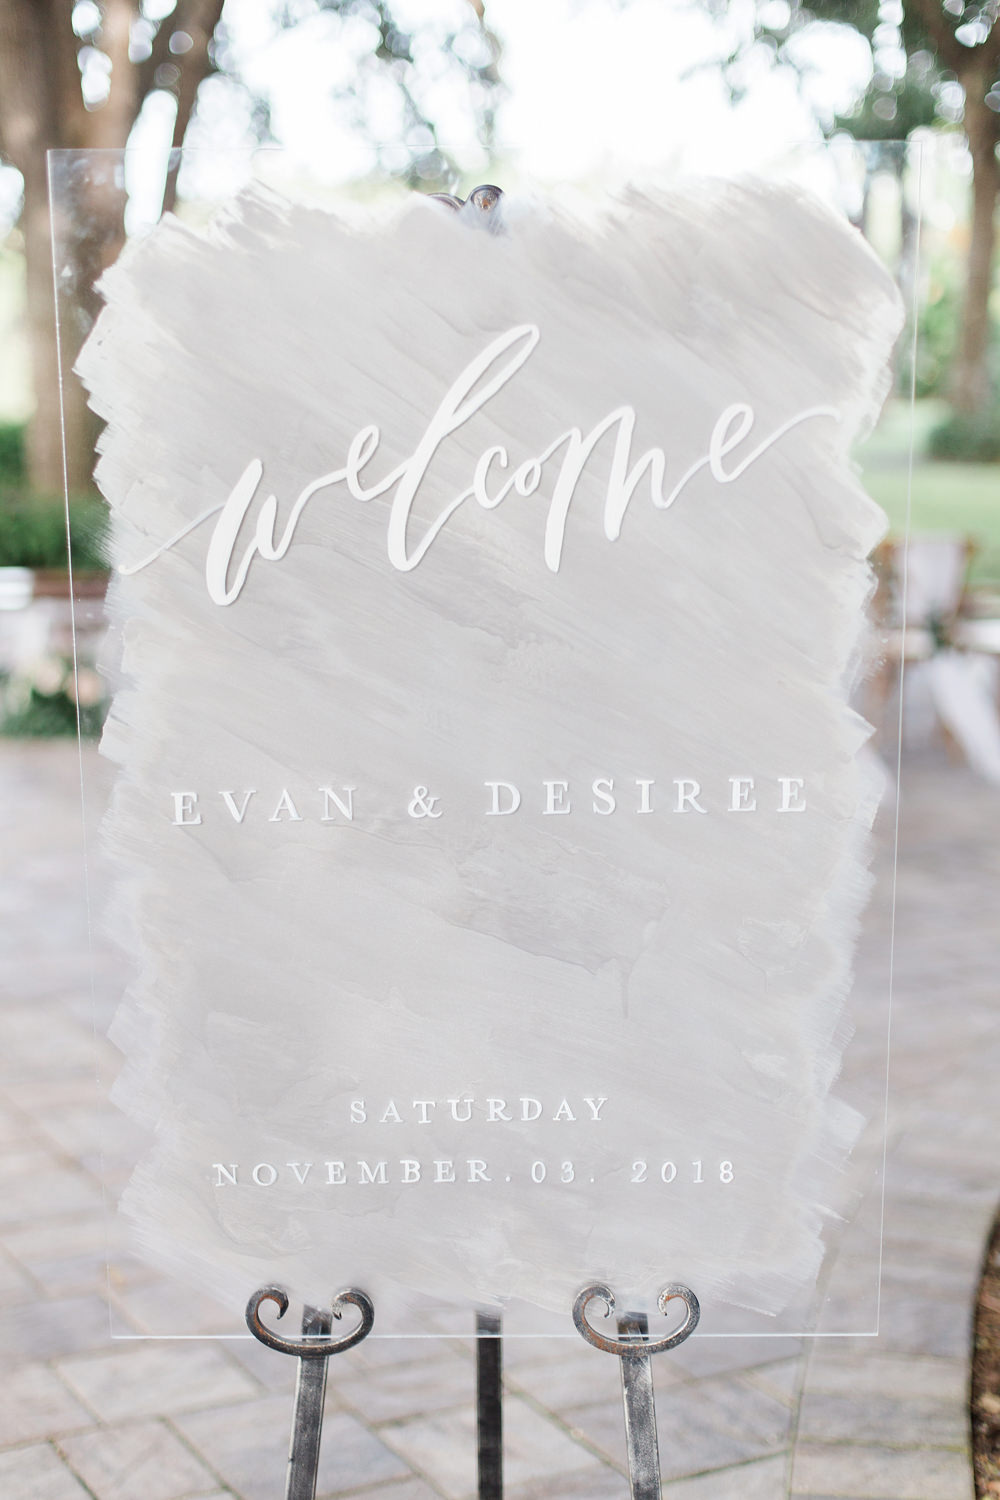 Acrylic welcome sign with white and grey.